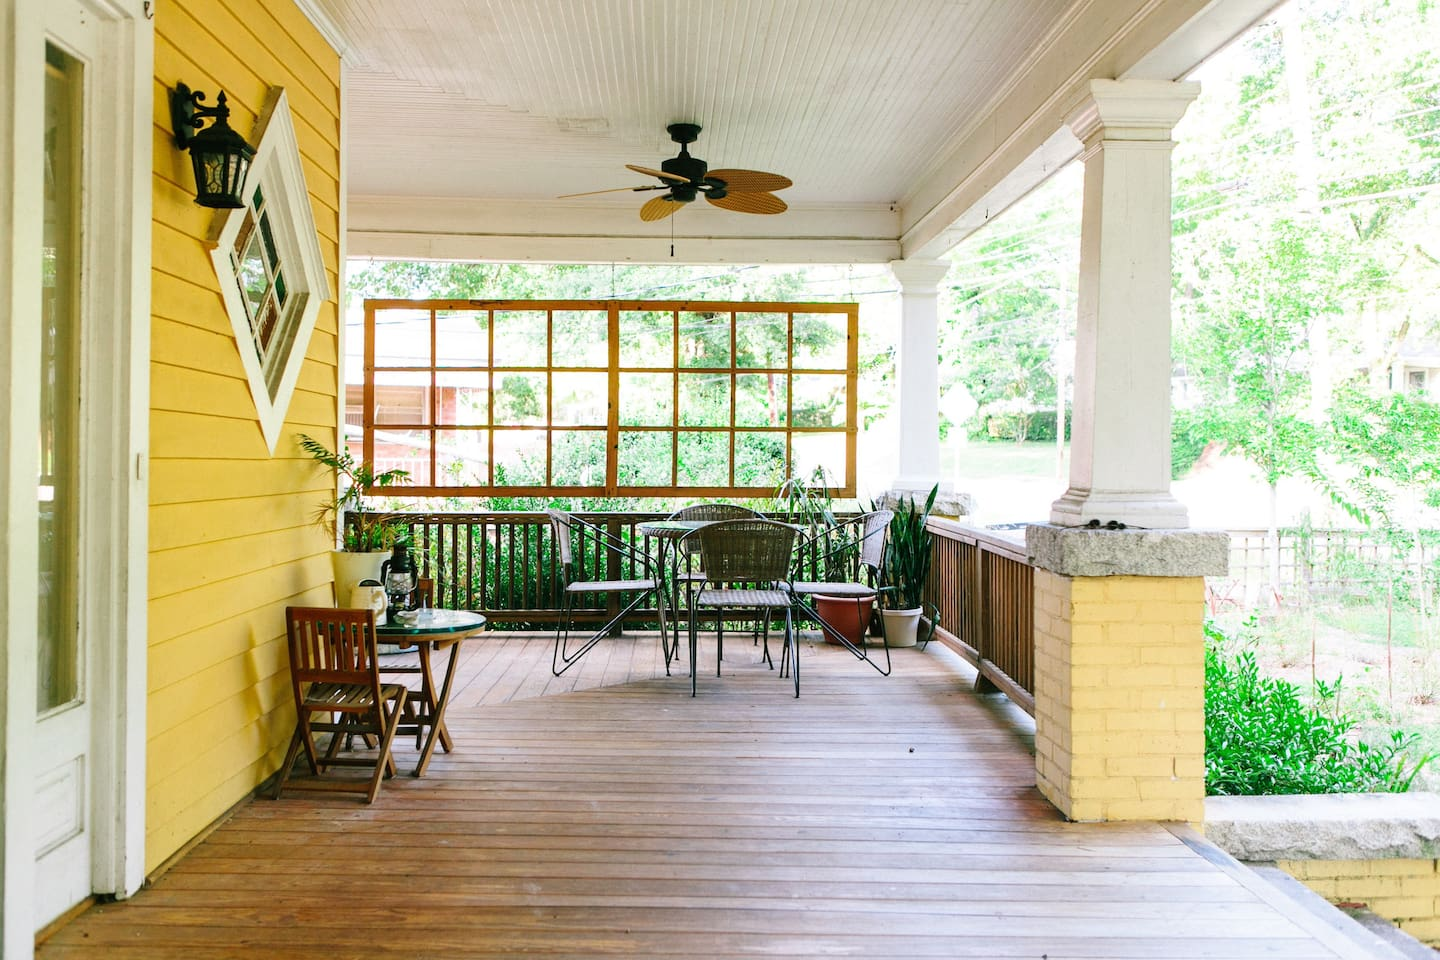 The porch is a great place to hang out and read.